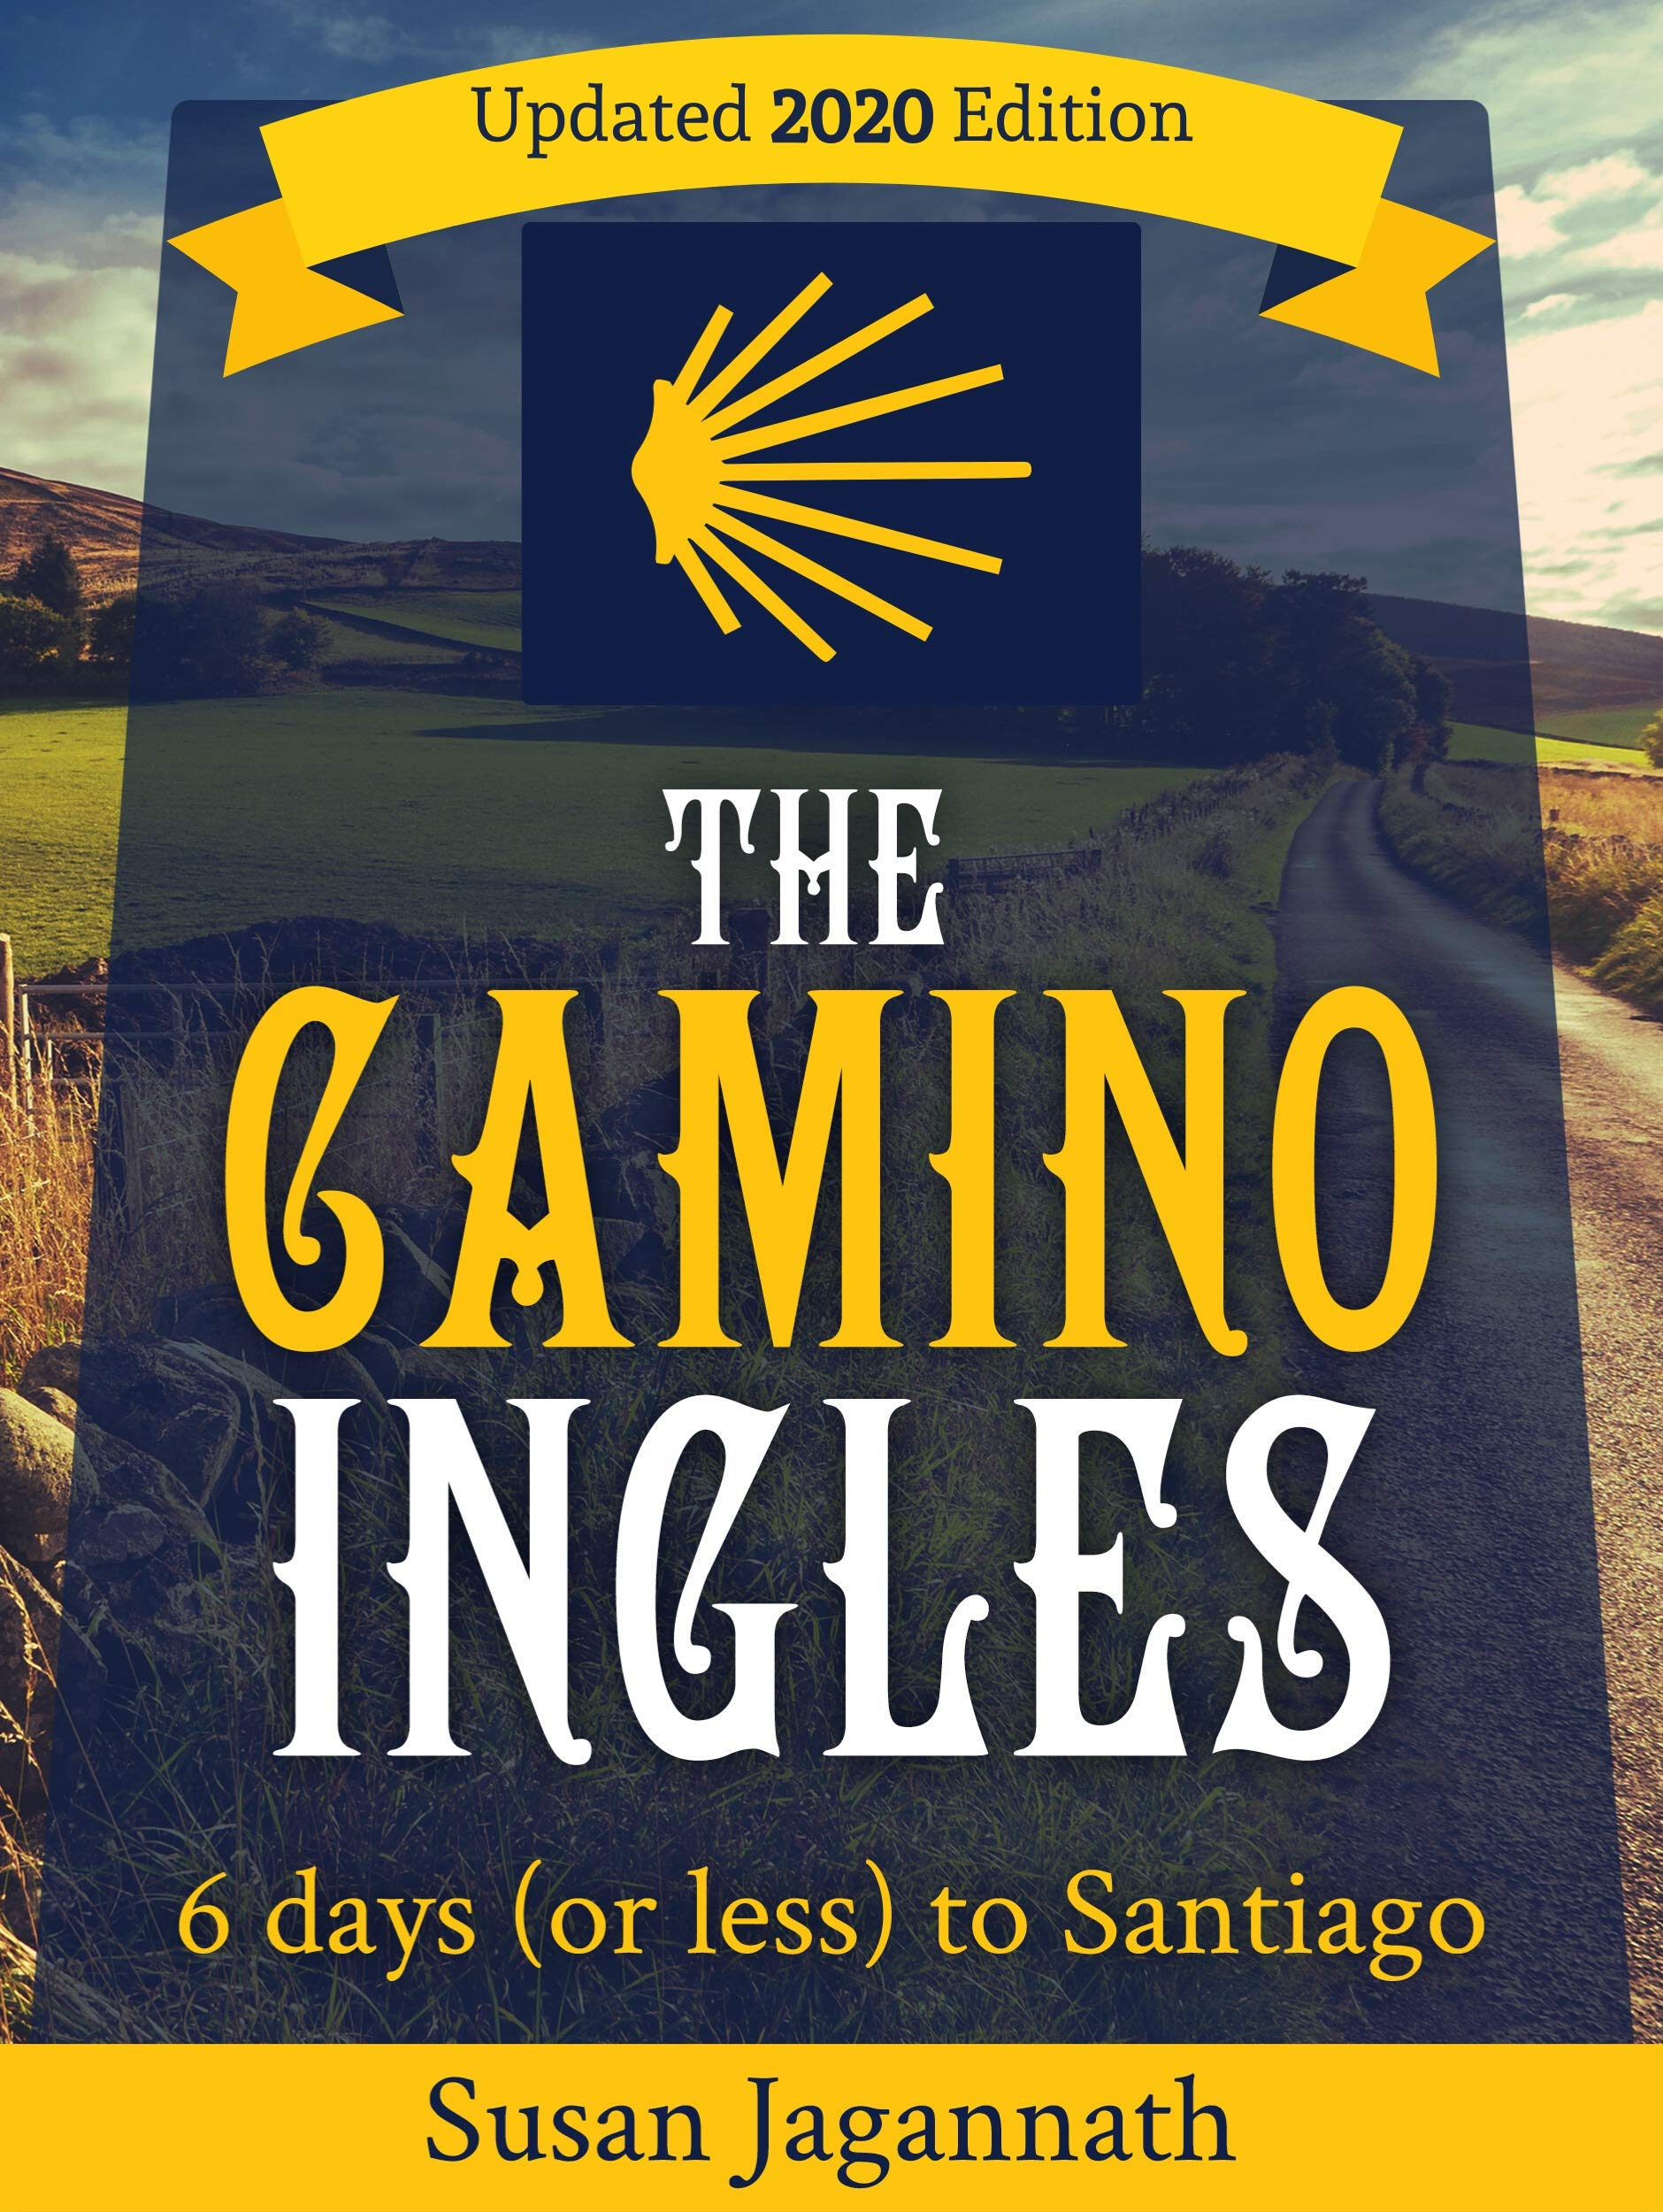 Image OfThe Camino Ingles: 6 Days (or Less) To Santiago (English Edition)